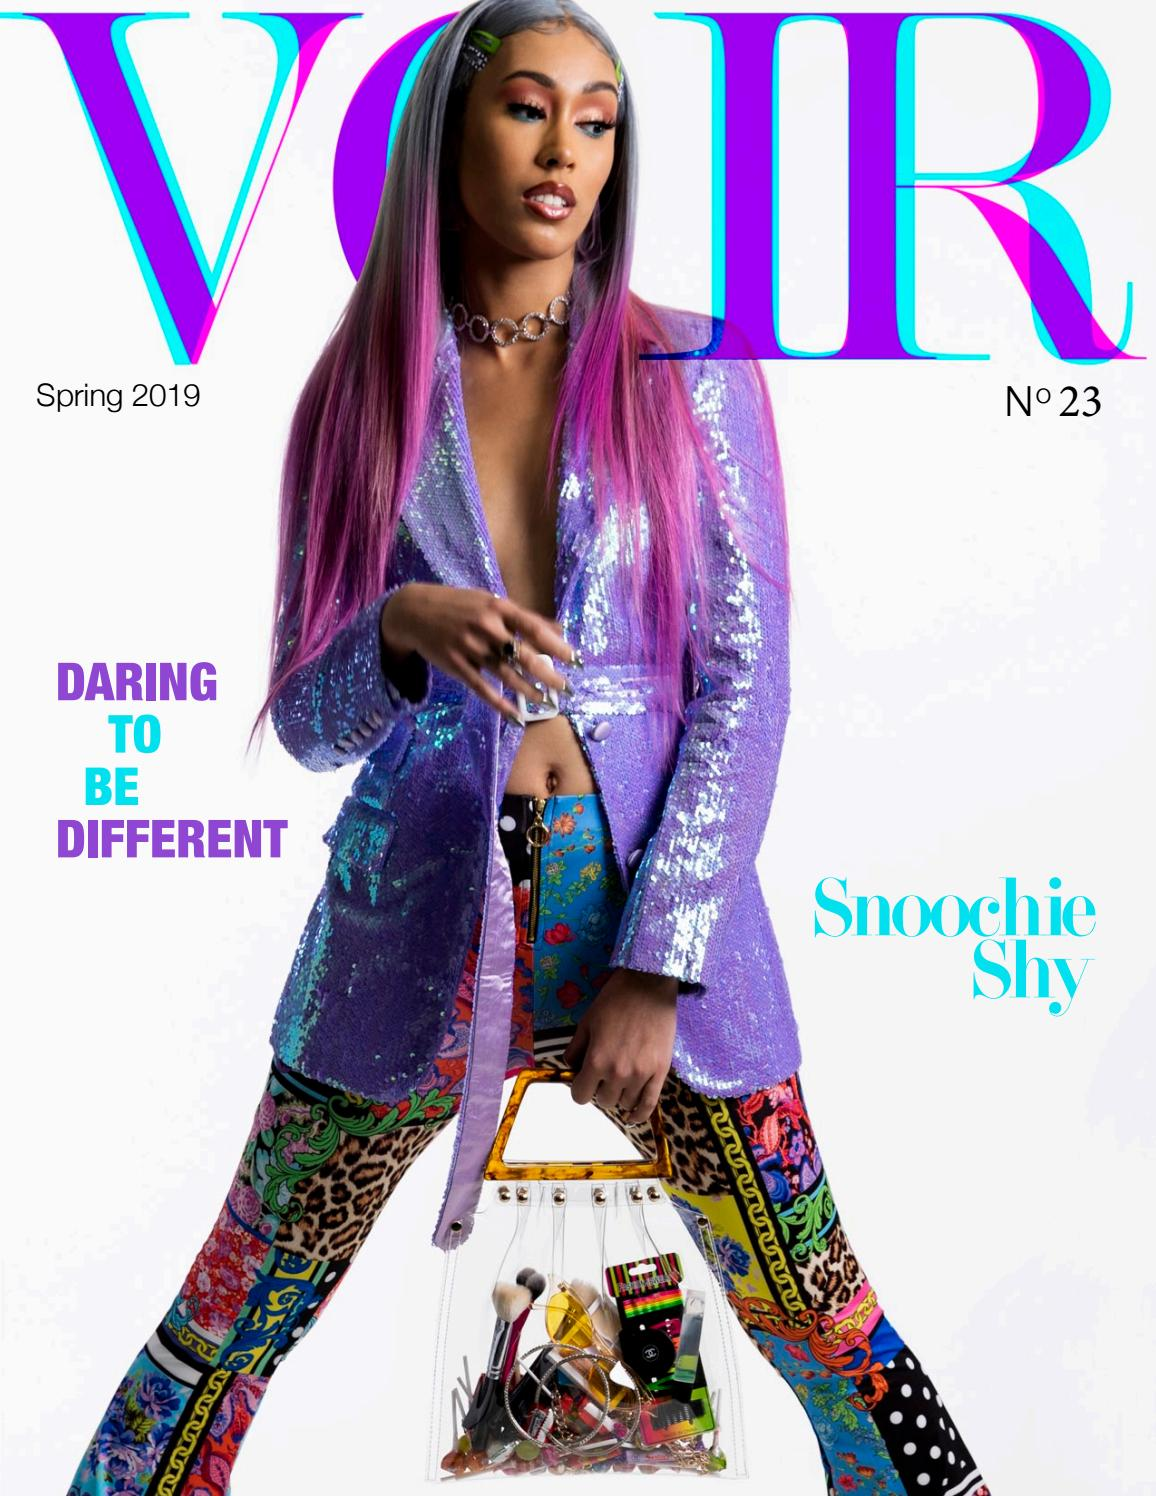 Voir Fashion Issue 23 : Daring To Be Different ft Snoochie Shy by